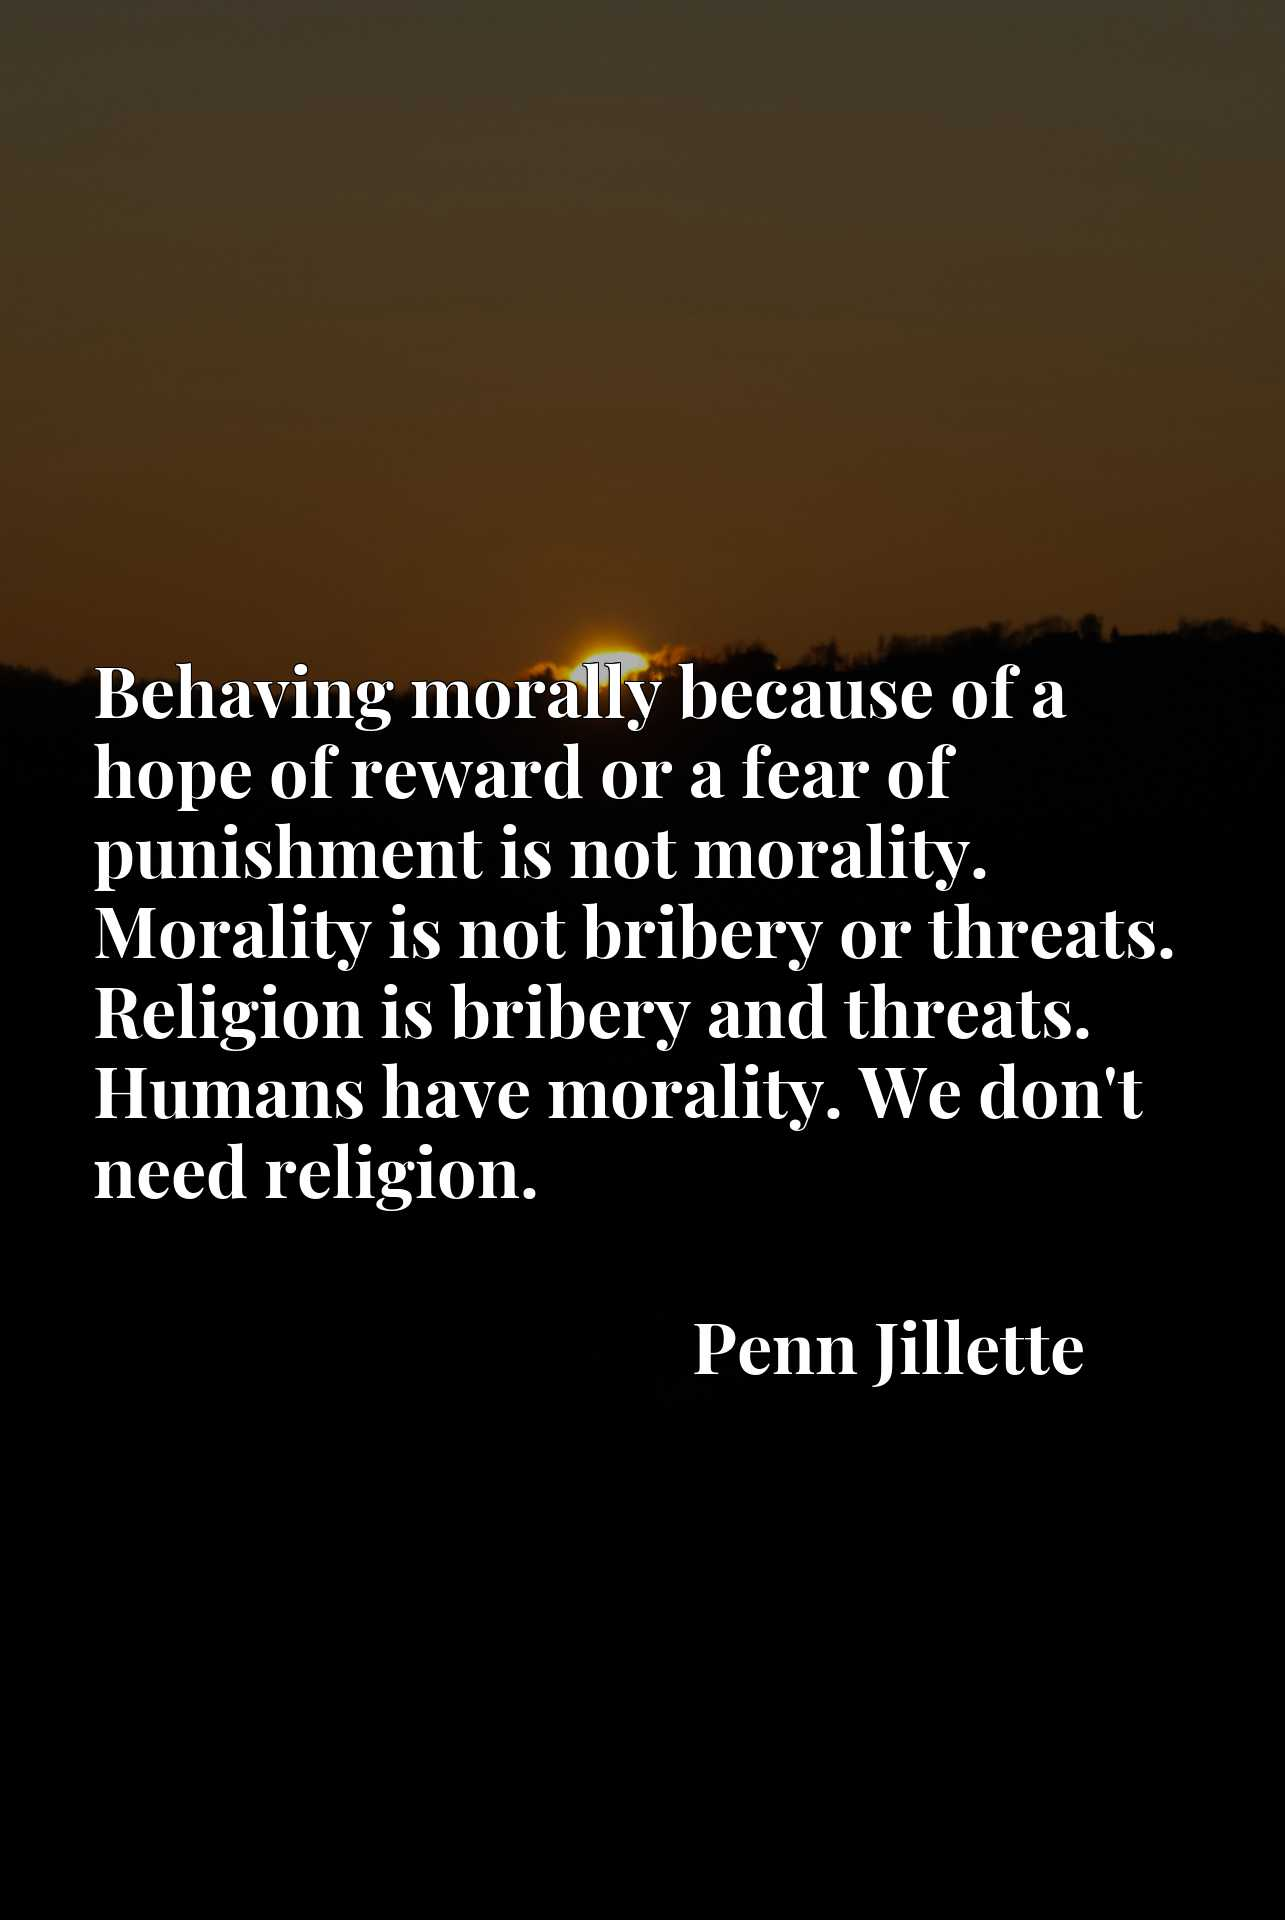 Behaving morally because of a hope of reward or a fear of punishment is not morality. Morality is not bribery or threats. Religion is bribery and threats. Humans have morality. We don't need religion.